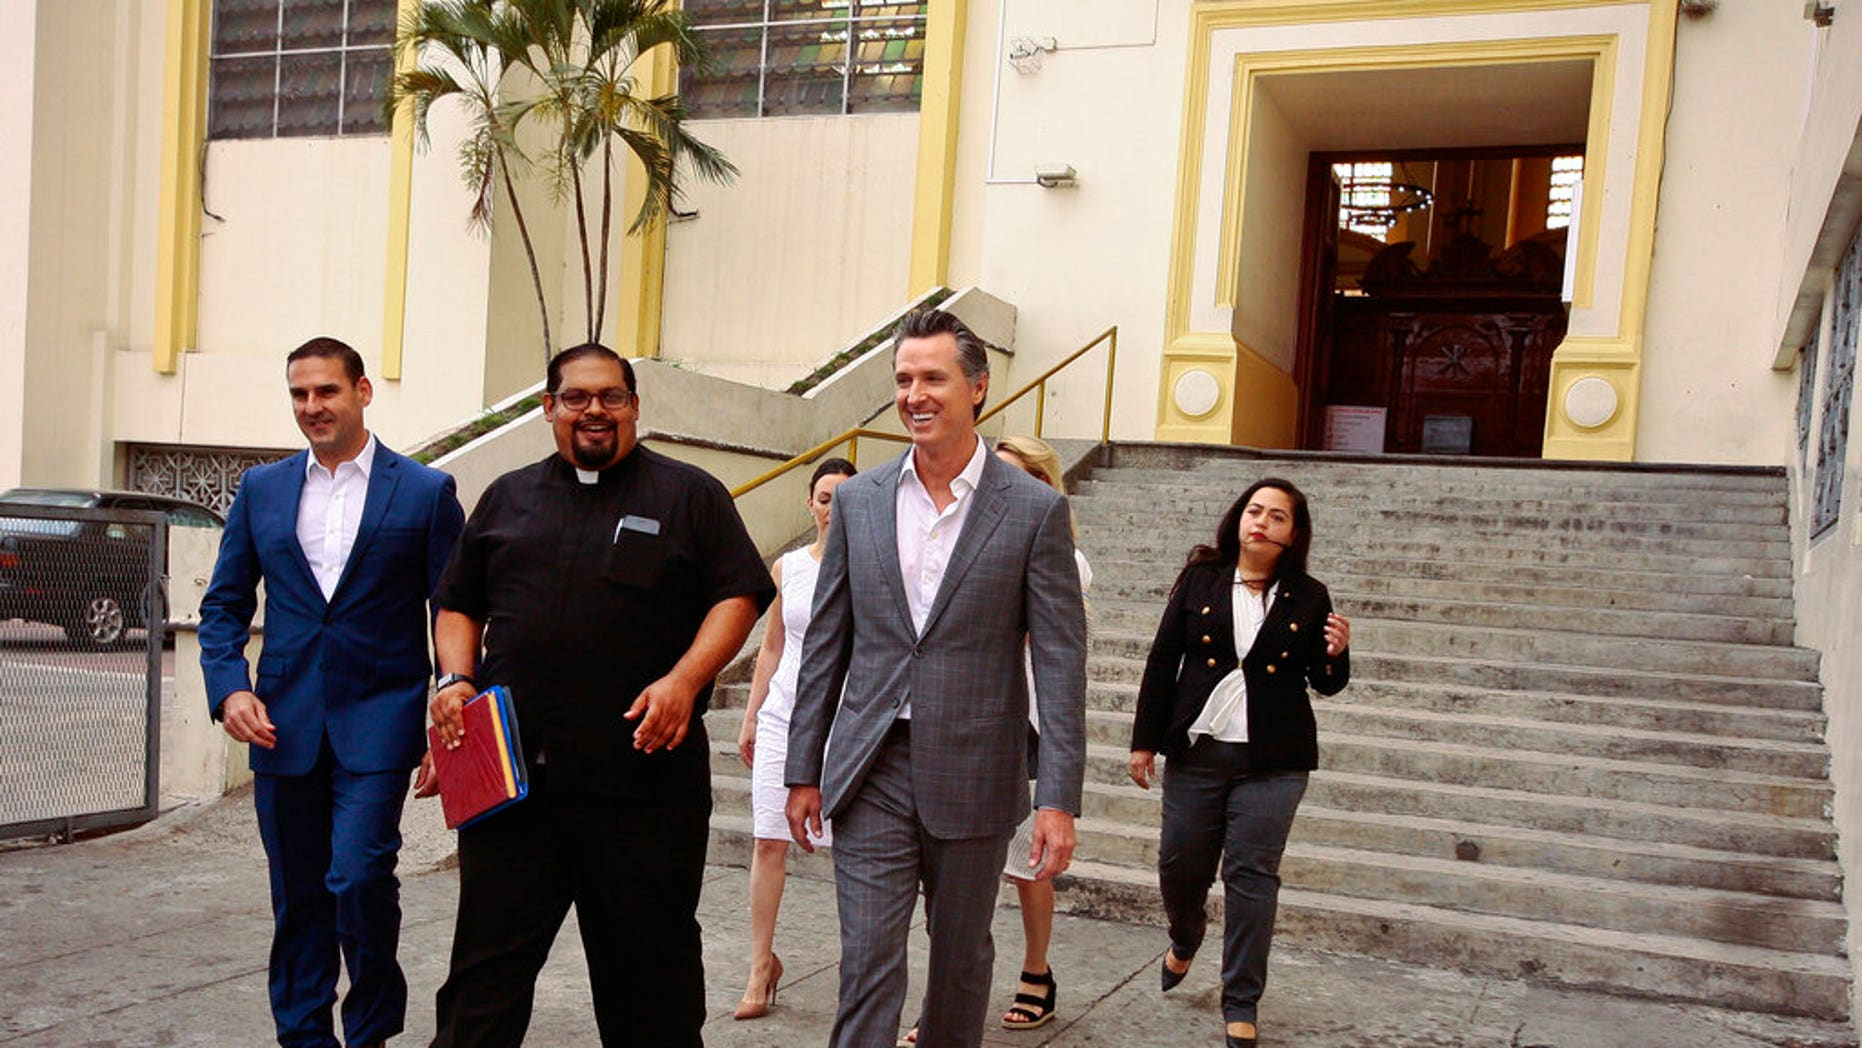 California Gov. Gavin Newsom, second from right, walks out with San Salvador Mayor Ernesto Muyshondtof, far left, after they visited the tomb of Archbishop Oscar Romero at Metropolitan Cathedral in San Salvador, El Salvador.